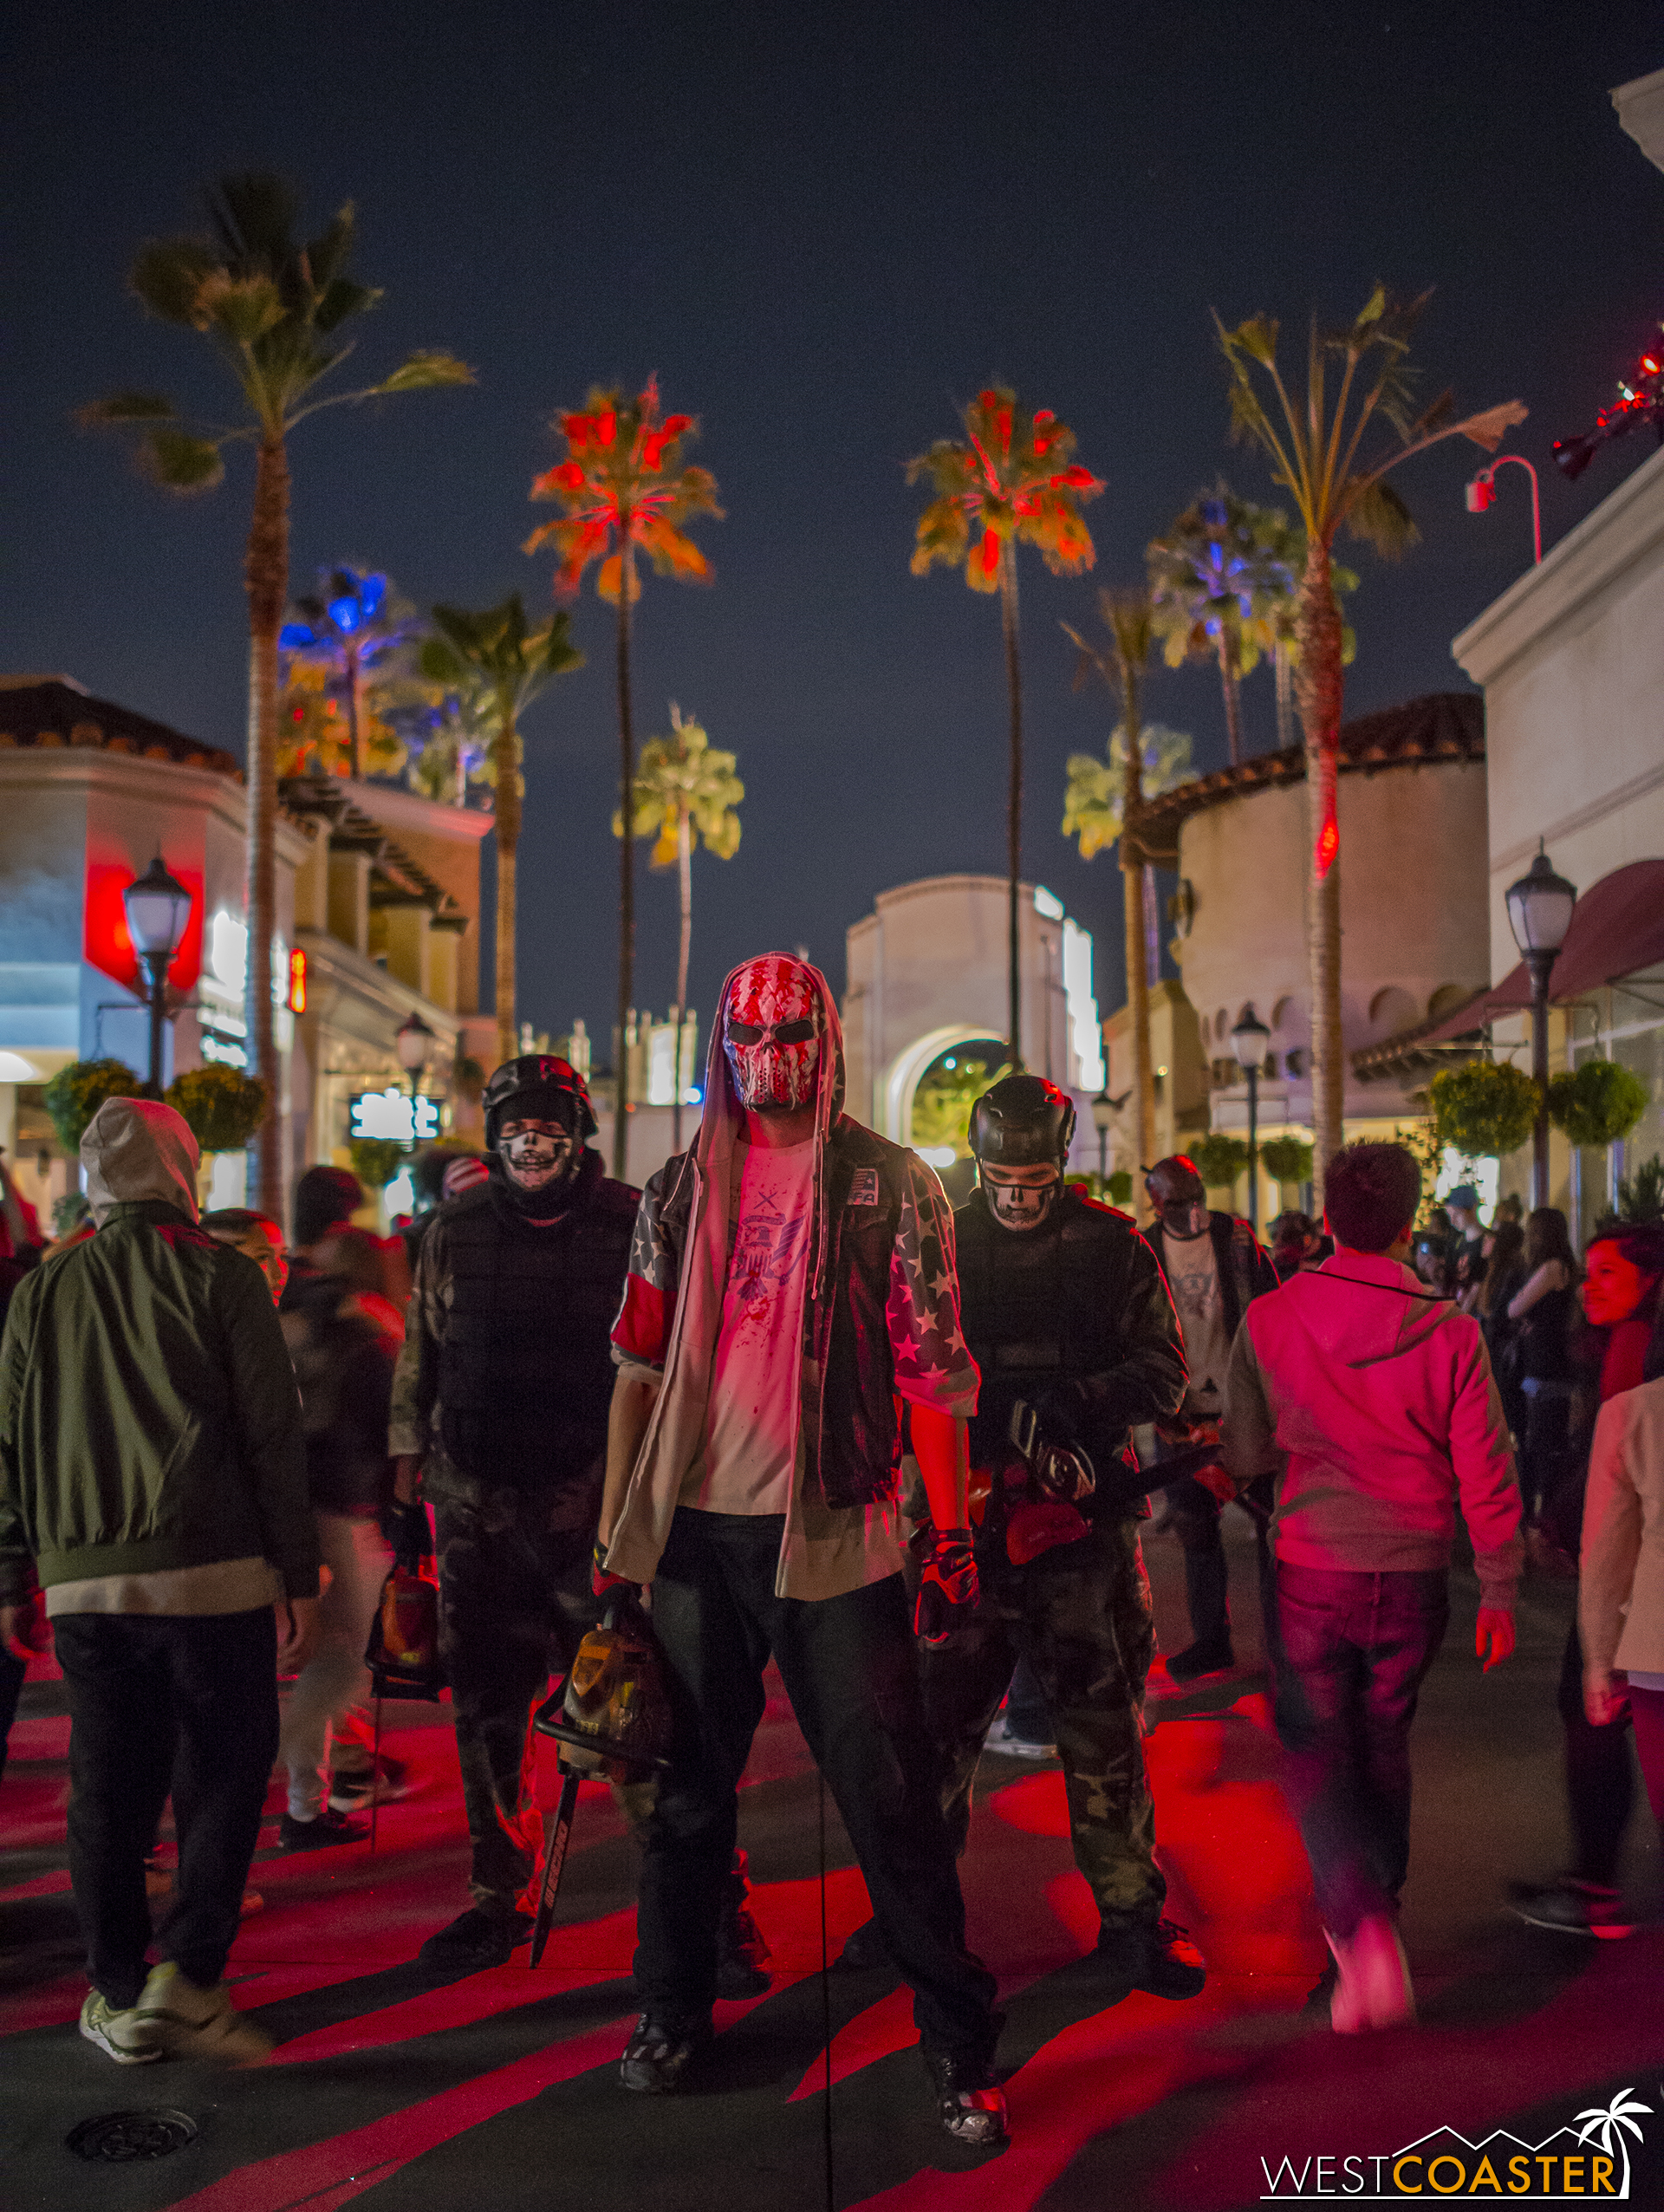 For those who've never been, during the last half hour of so, all the chainsaw scareactors from the park's street zones assemble at the main thoroughfare out of the park.